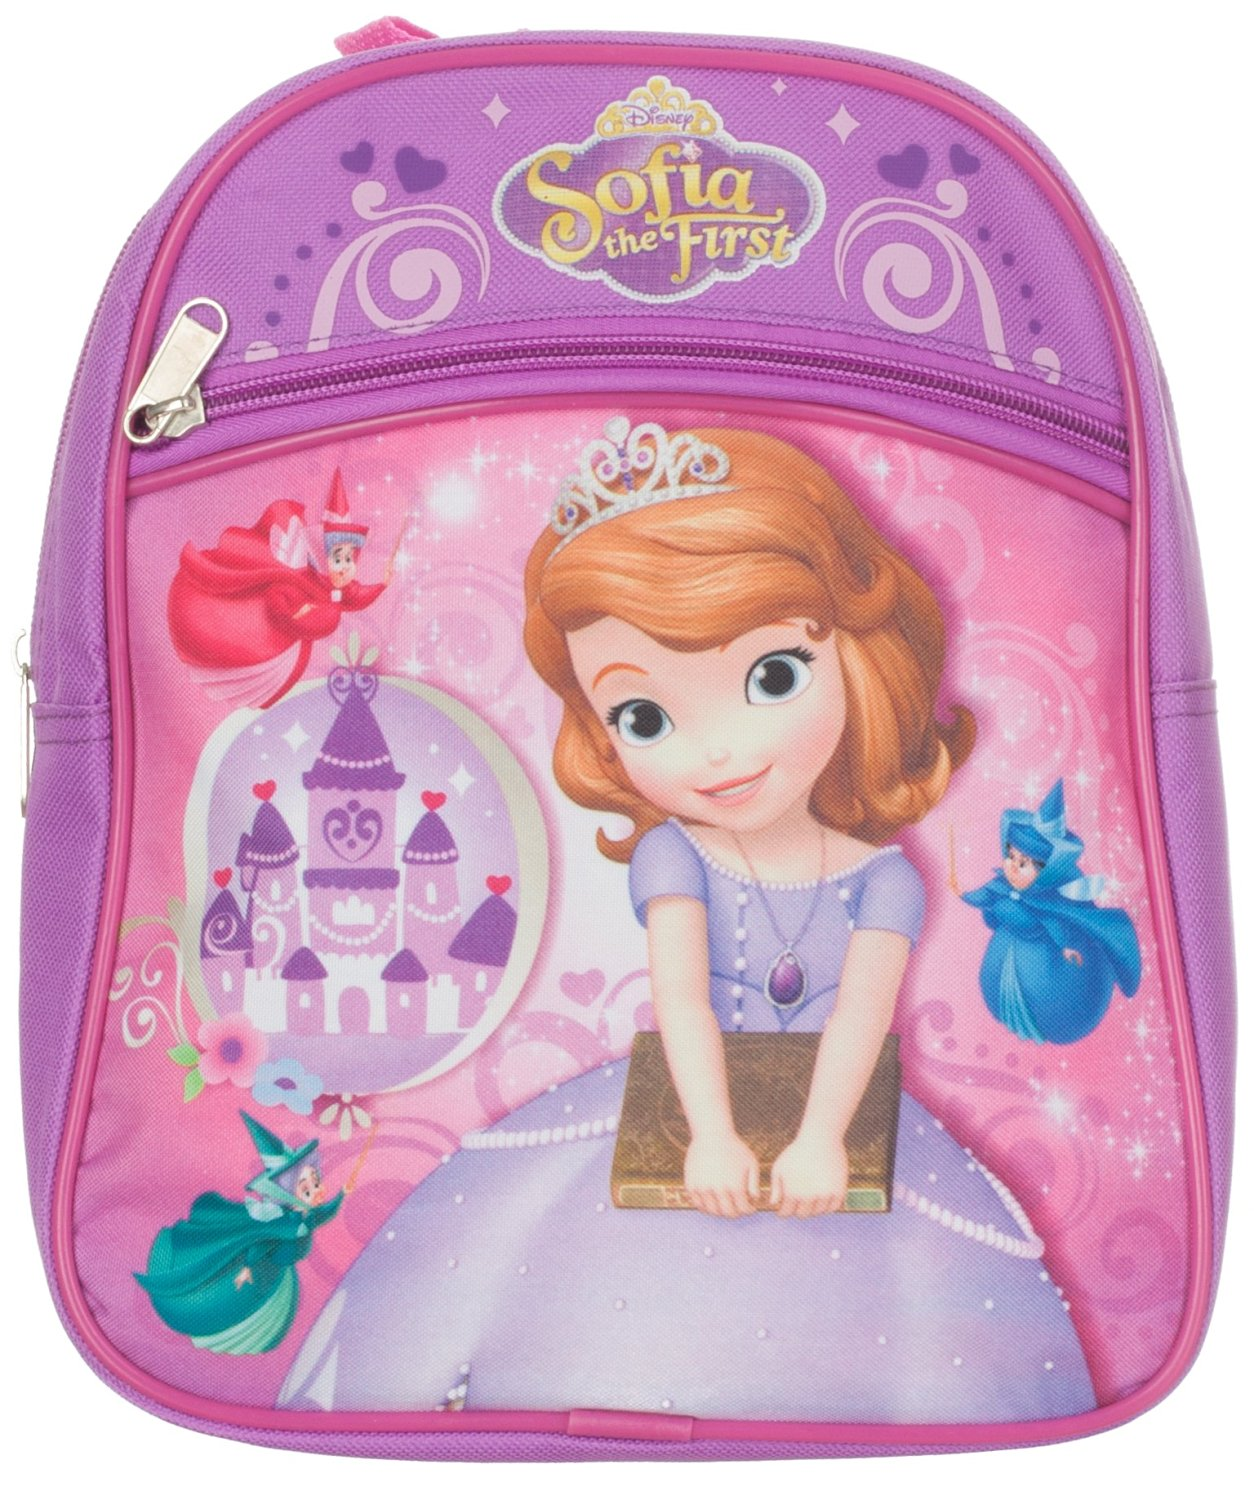 dec80443bc4 Get Quotations · Disney Girls Sofia the First Mini Backpack 10